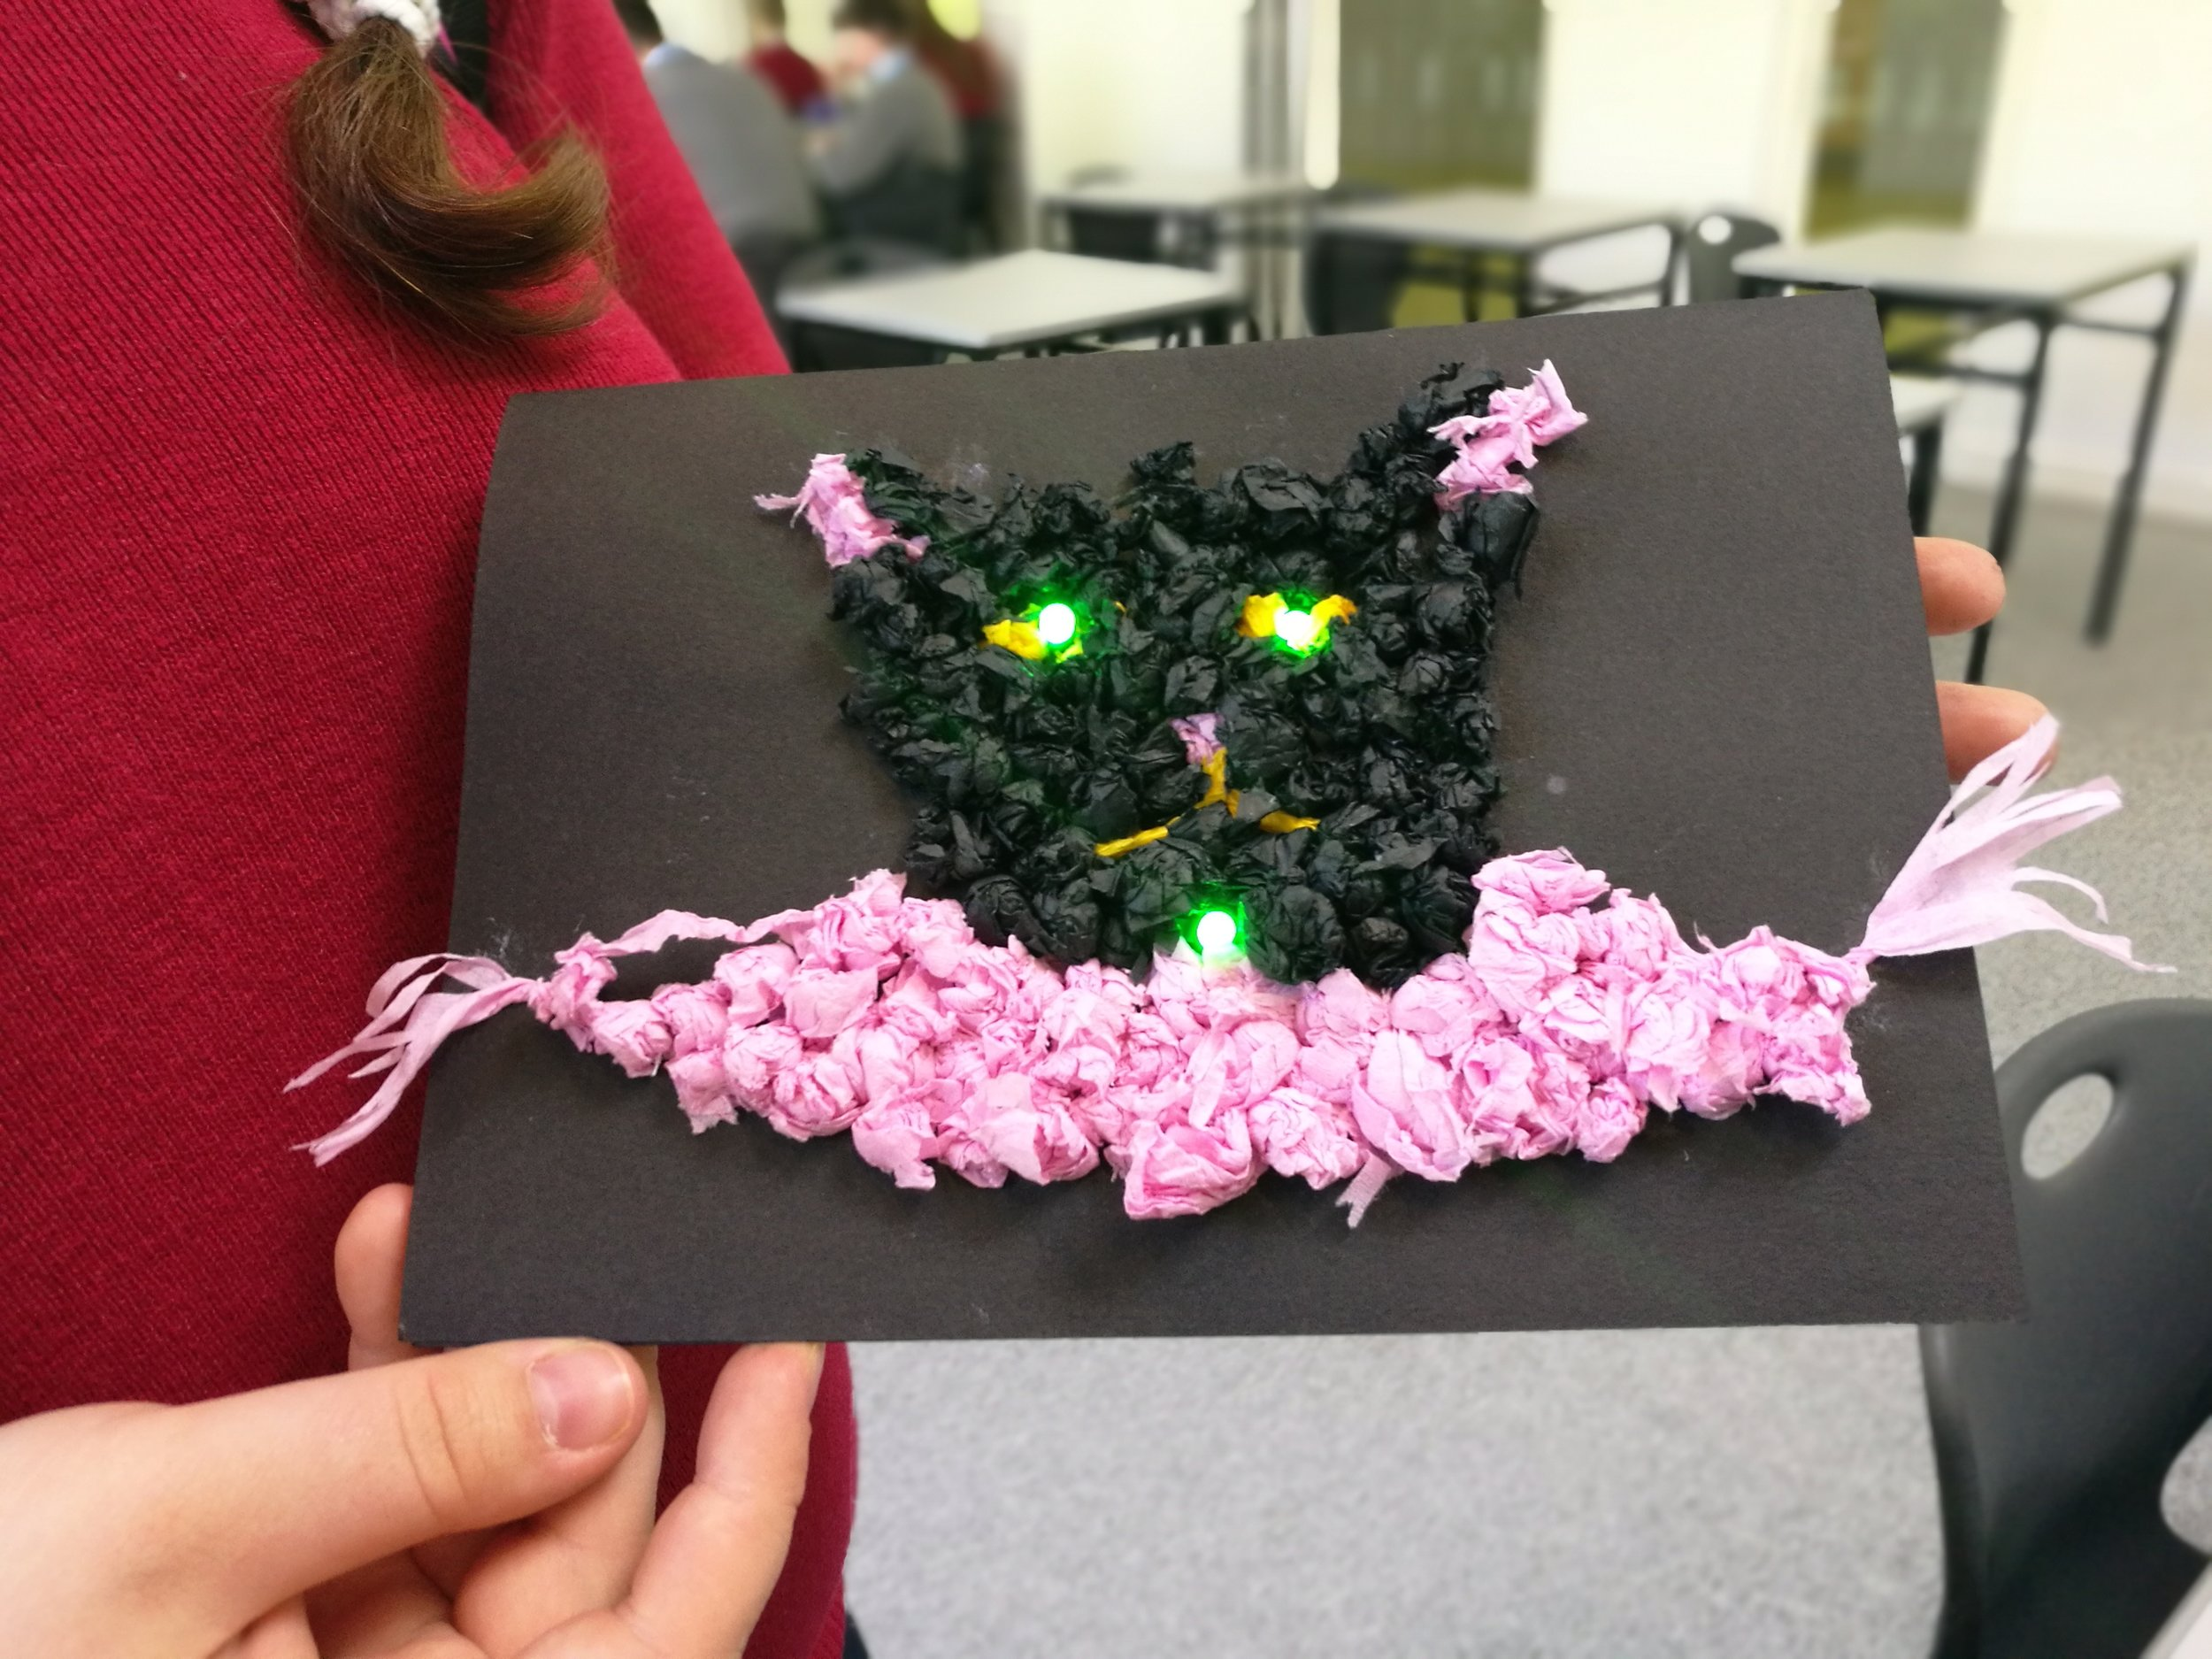 LED Artwork   A great workshop to combine creativity and design with LEDs. Also, a wonderful introduction to soldering.  You will be introduced to crafting, design, circuitry and how to work with electronic components such as LEDs, resistors, batteries and conductive tape to make an LED art work or an light box.  This workshop can be run with 10+ / adult age group, as a 2/3 hour session, or as a full day workshop.  If you would like to discuss and/or book this workshop with us  click here .